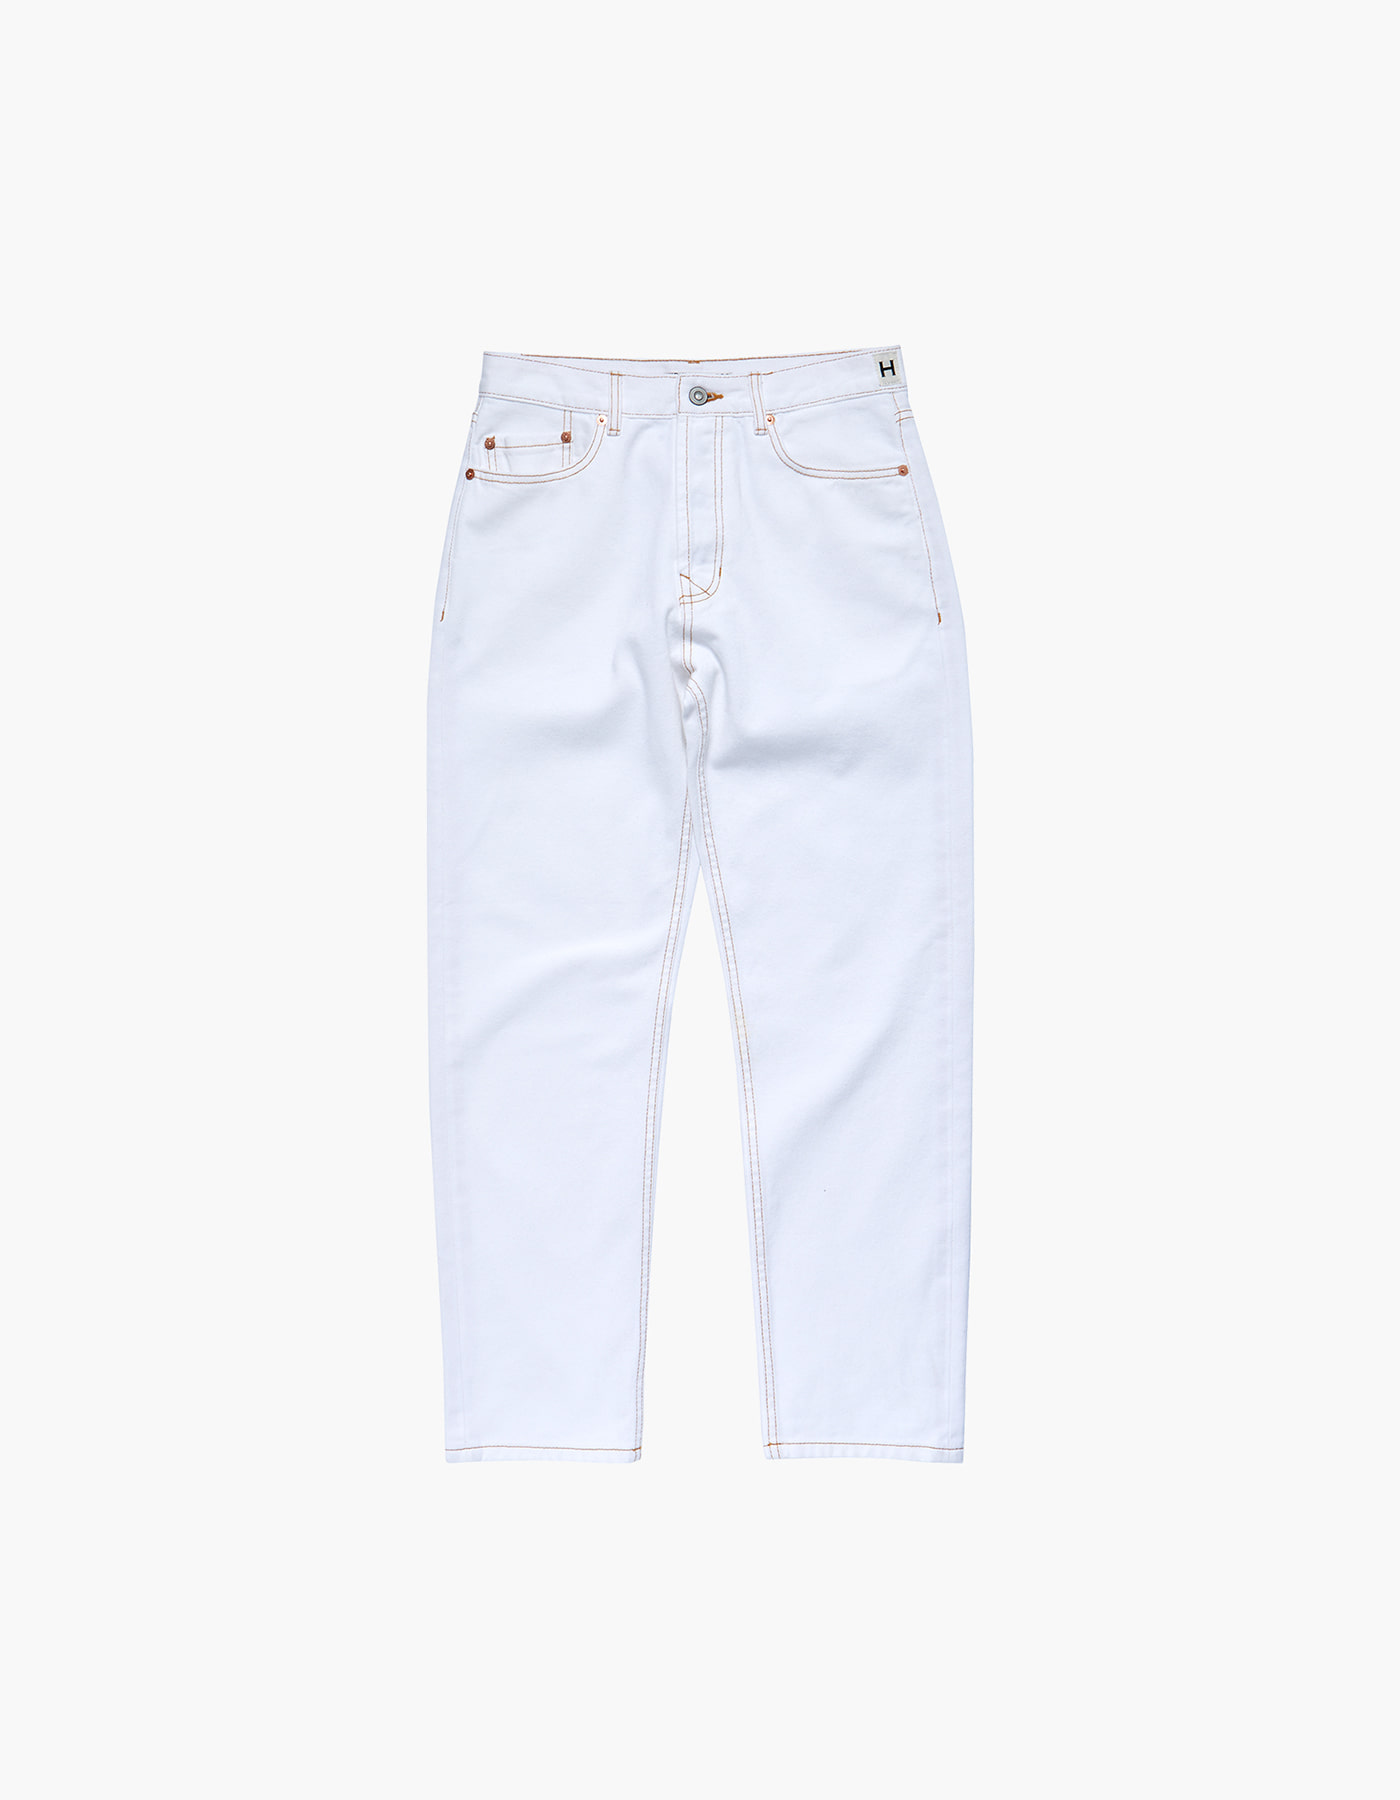 HFC CREST STONE JEANS (M) / WHITE